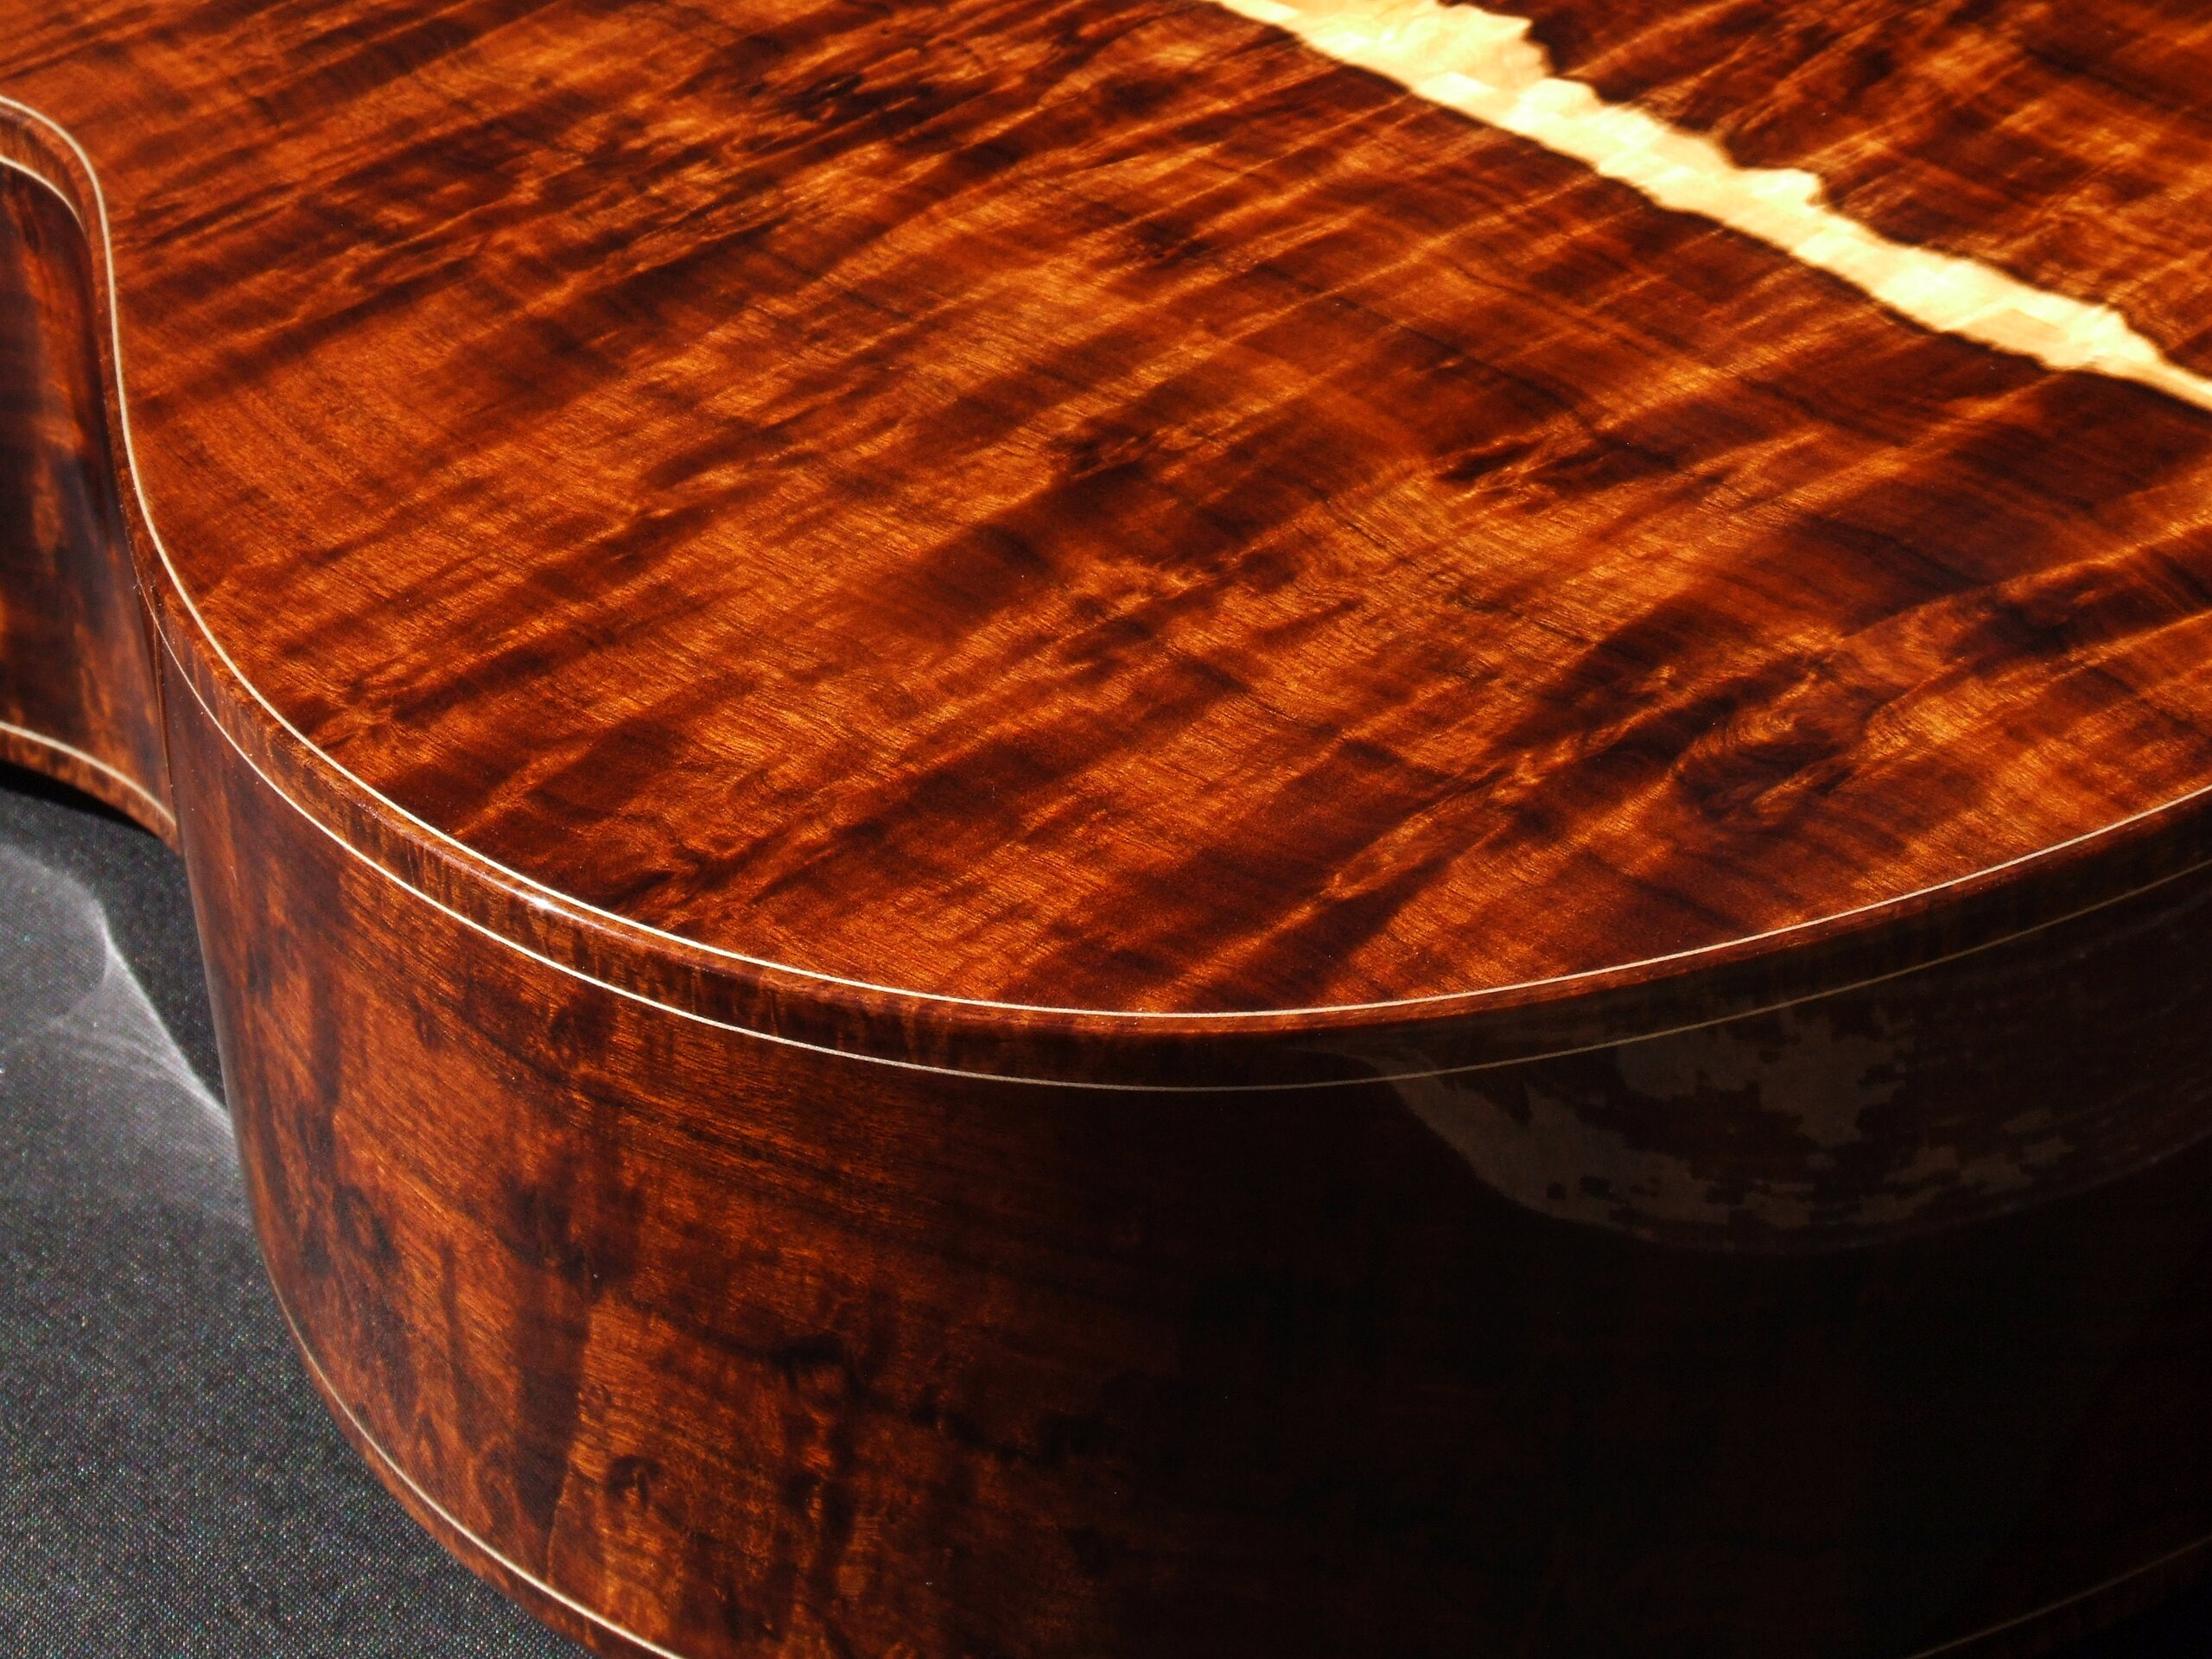 Gore classical guitar with highly figured Gidgee back and sides